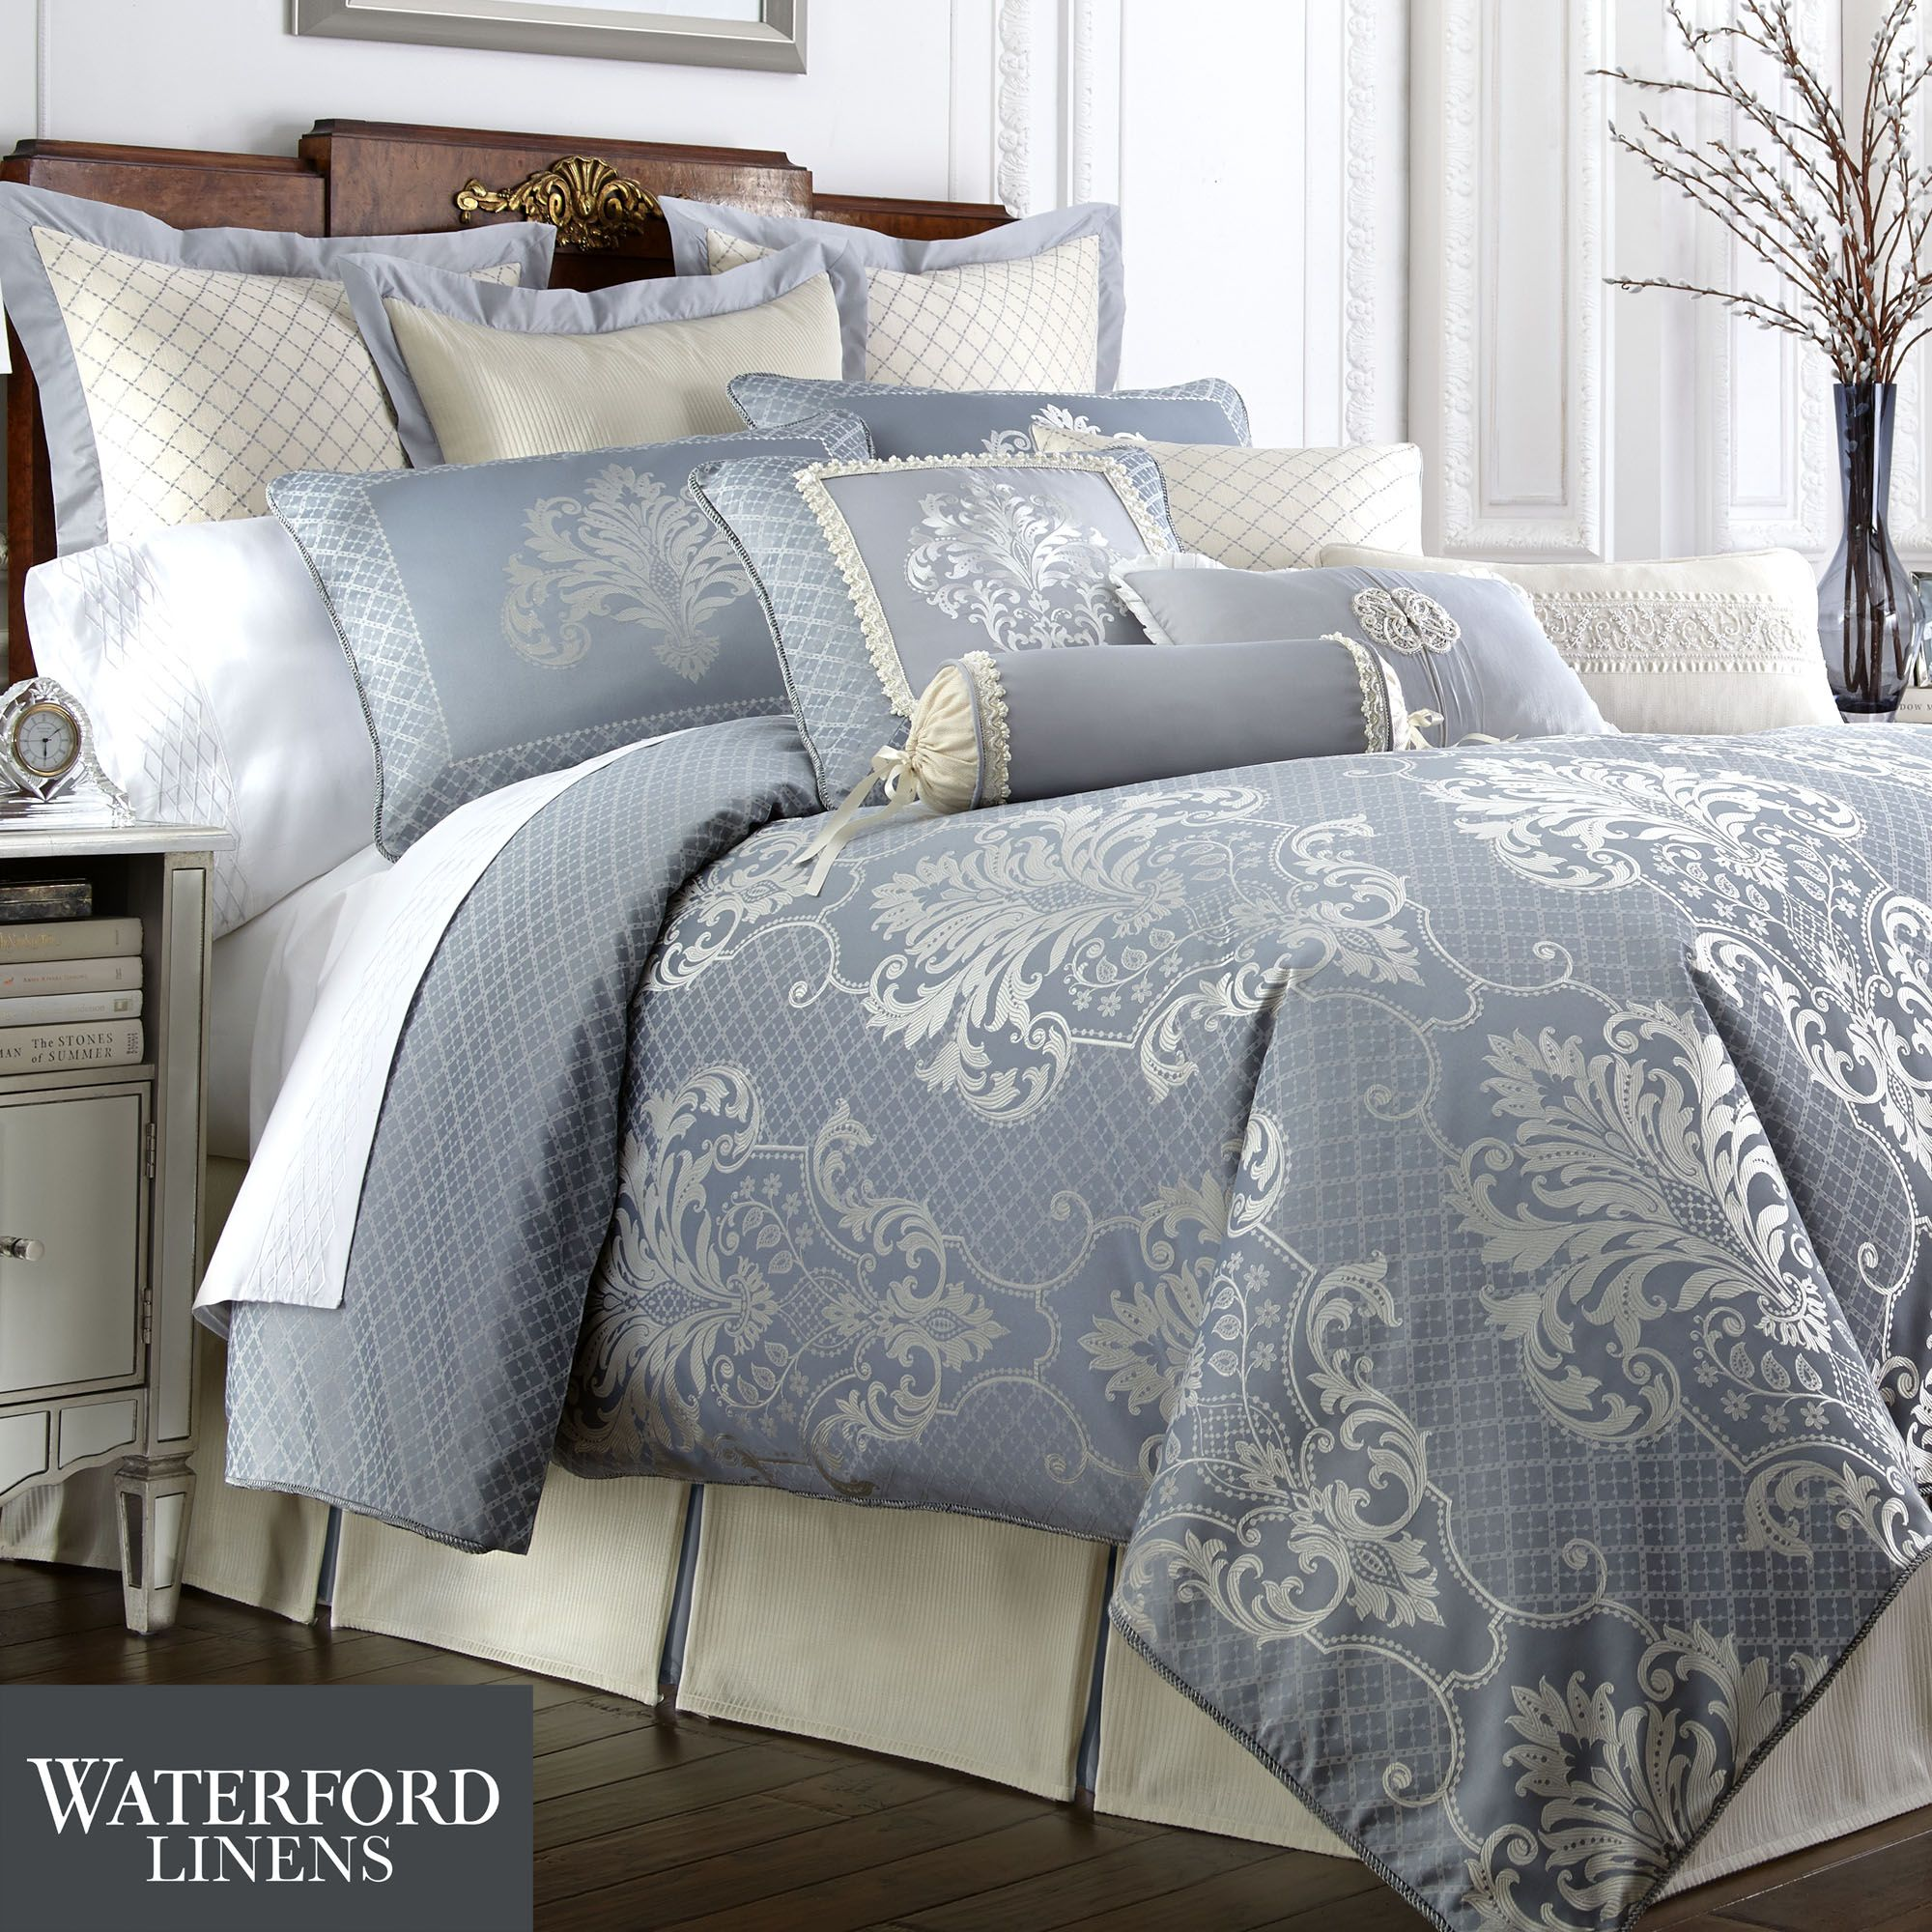 Twin Comforter Set | Luxury Comforter Sets | Luxurious Comforter Sets King Size